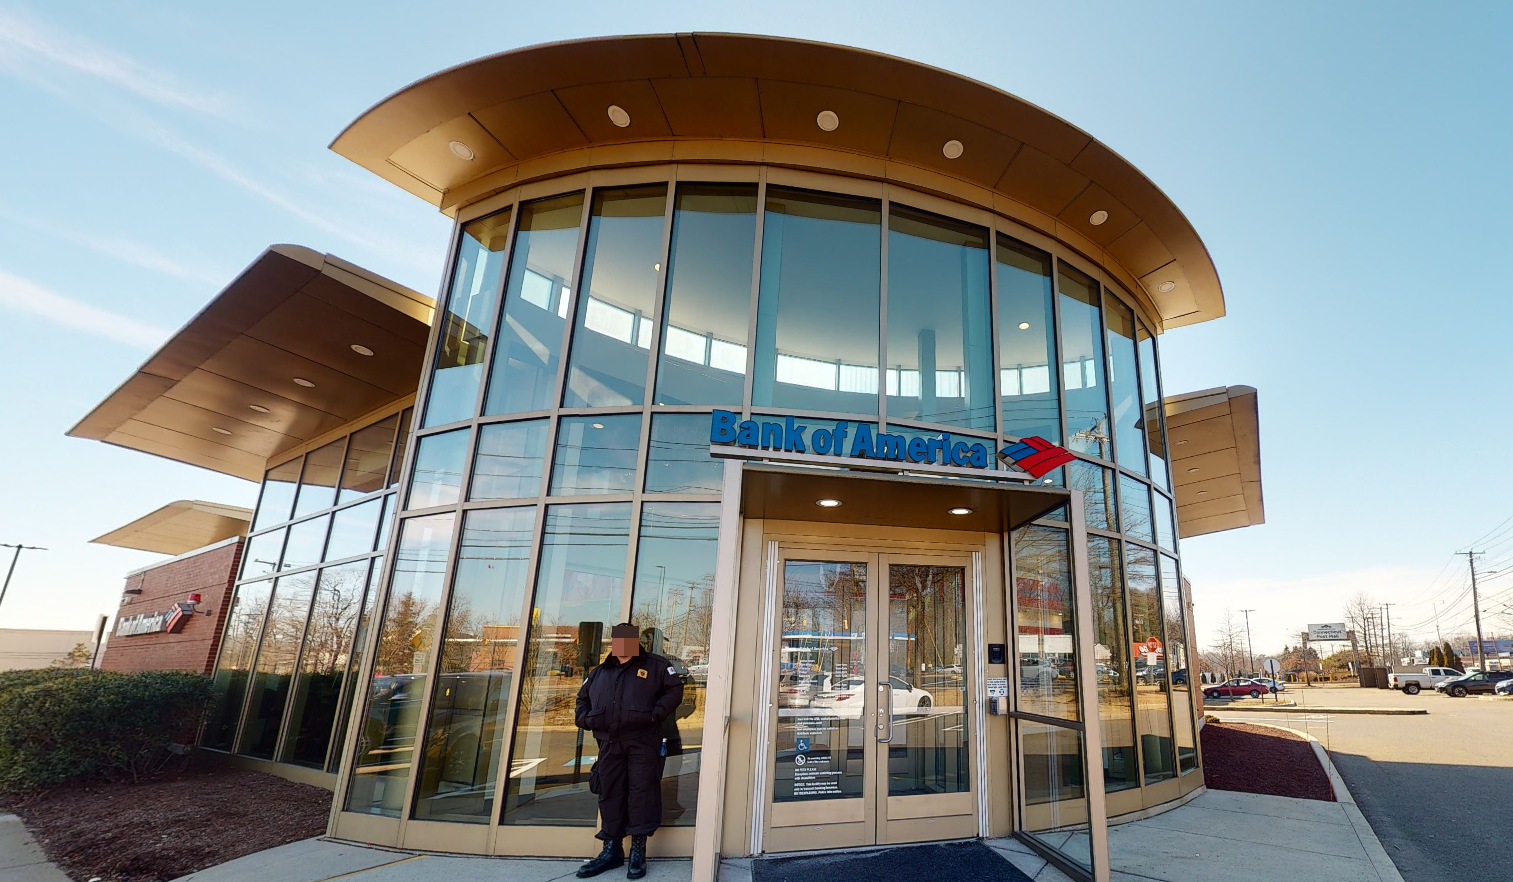 Bank of America financial center with drive-thru ATM and teller | 1331 Boston Post Rd, Milford, CT 06460